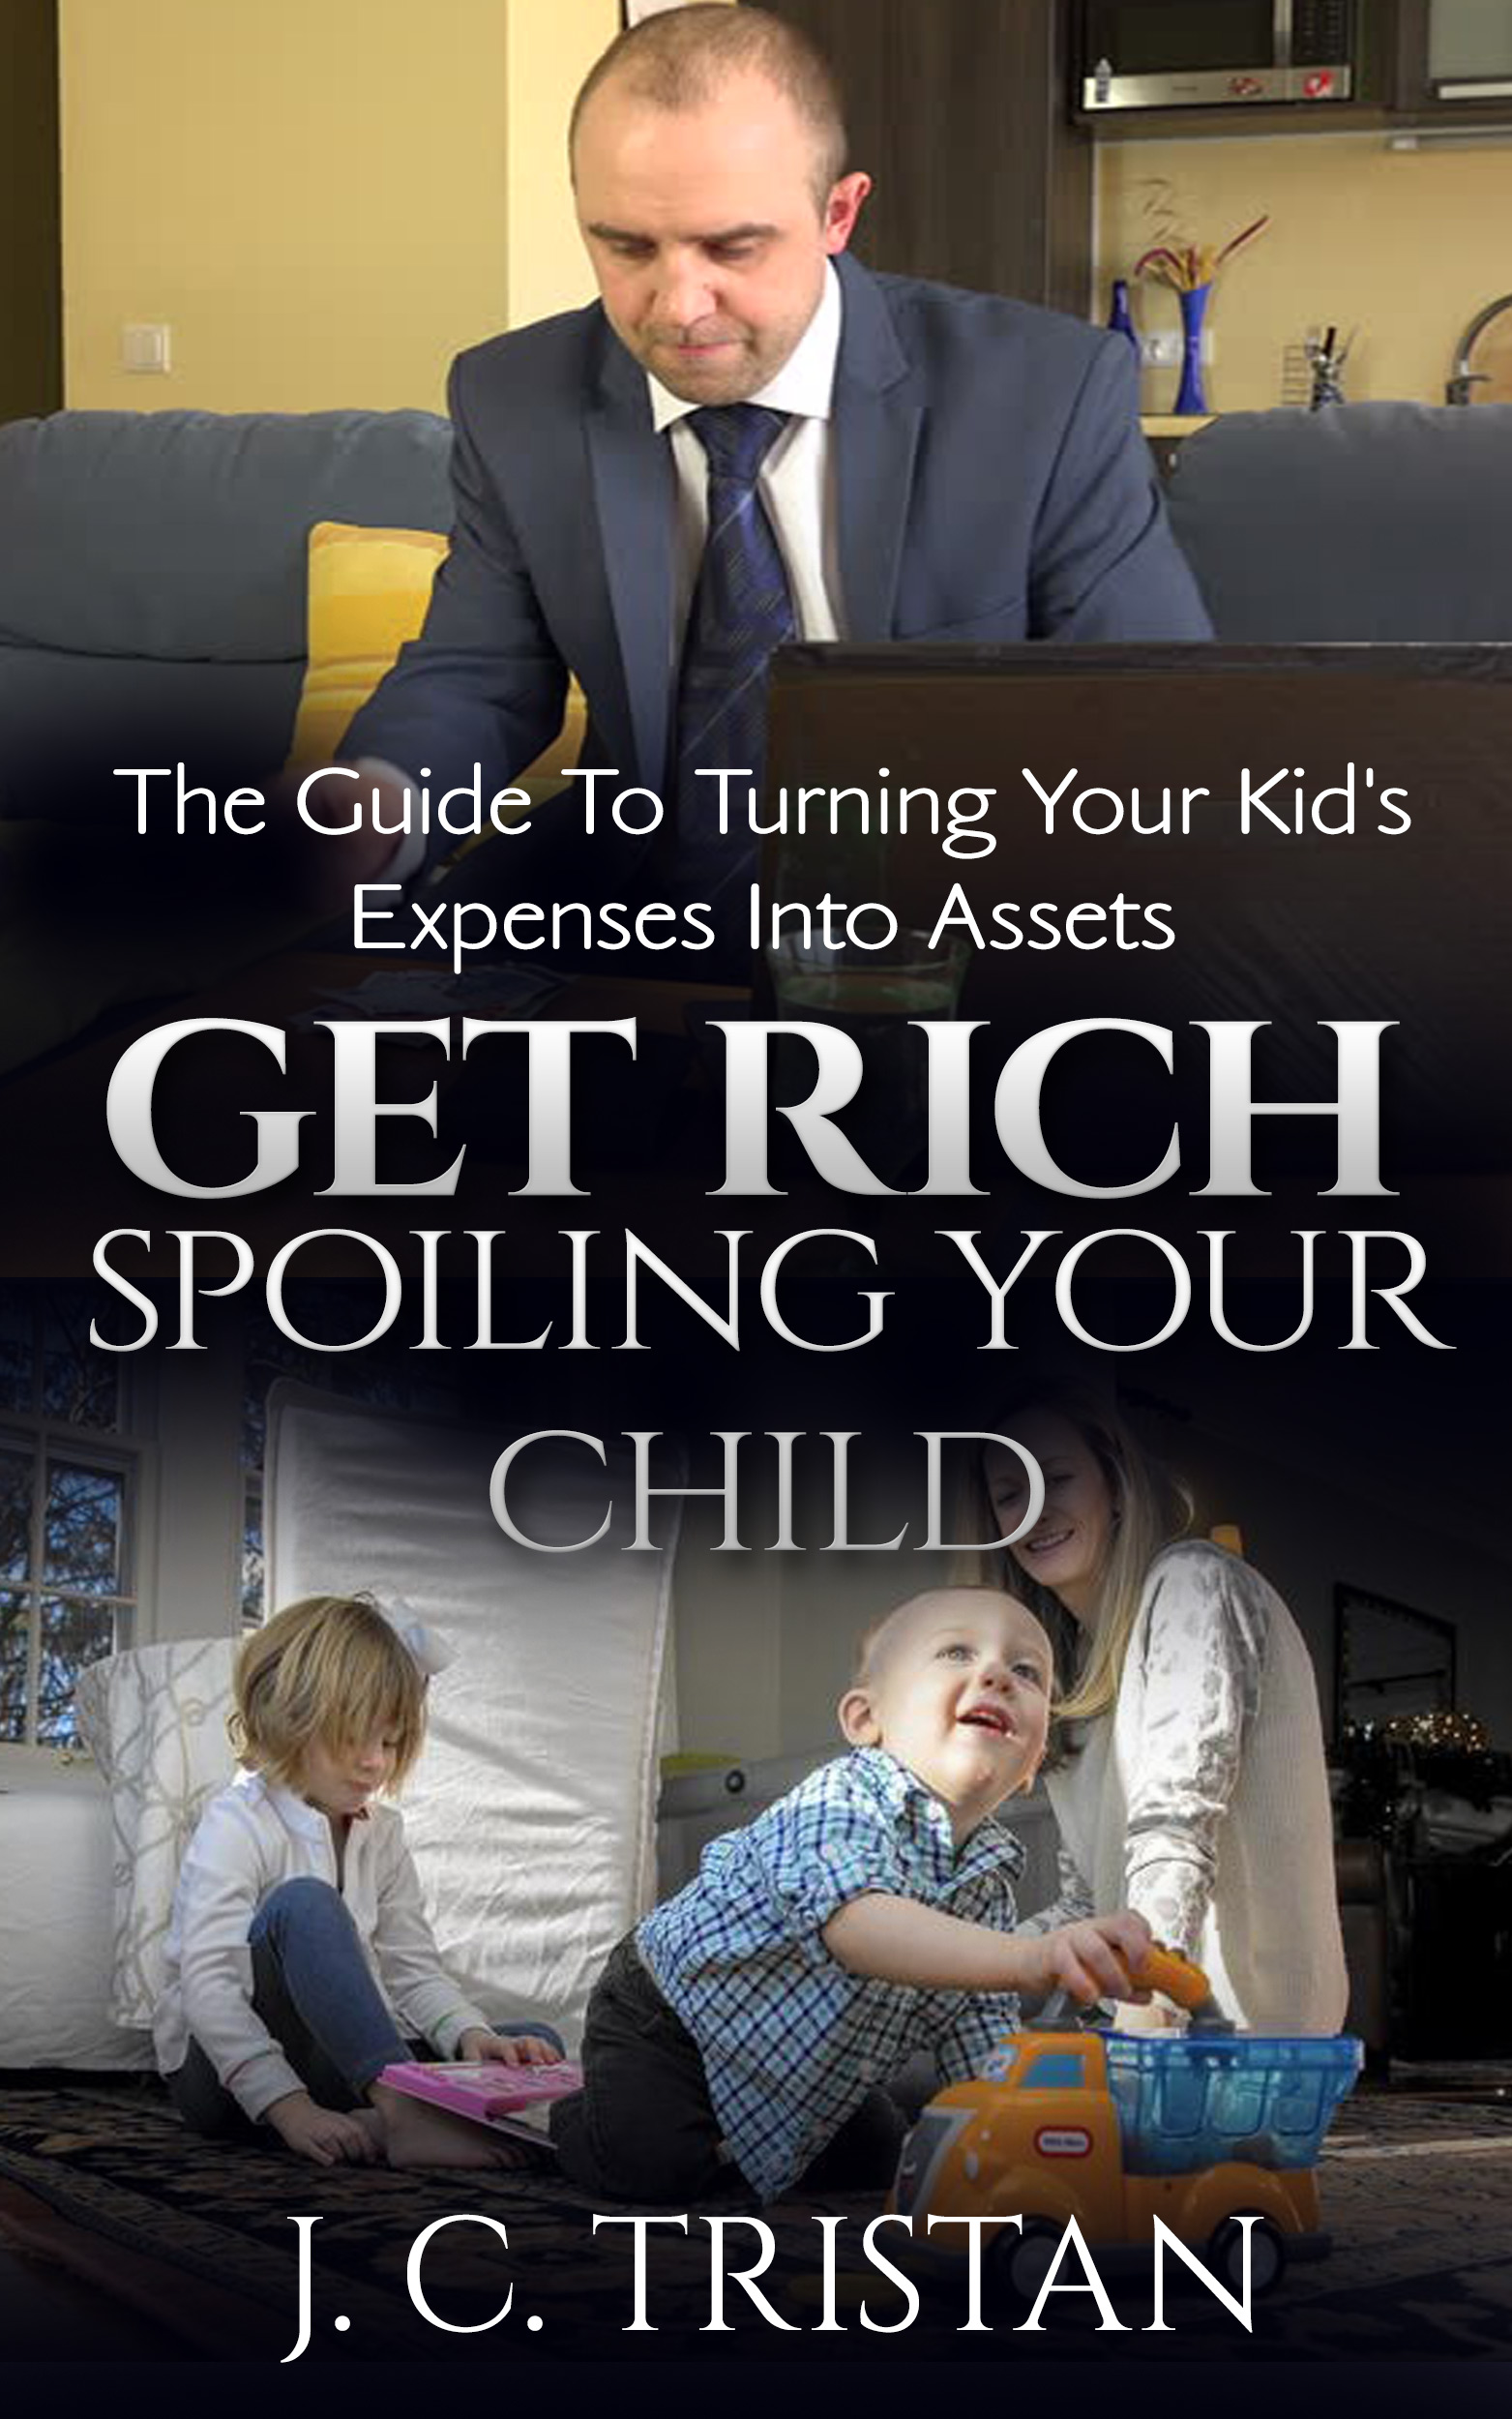 Get Rich Spoiling Your Child